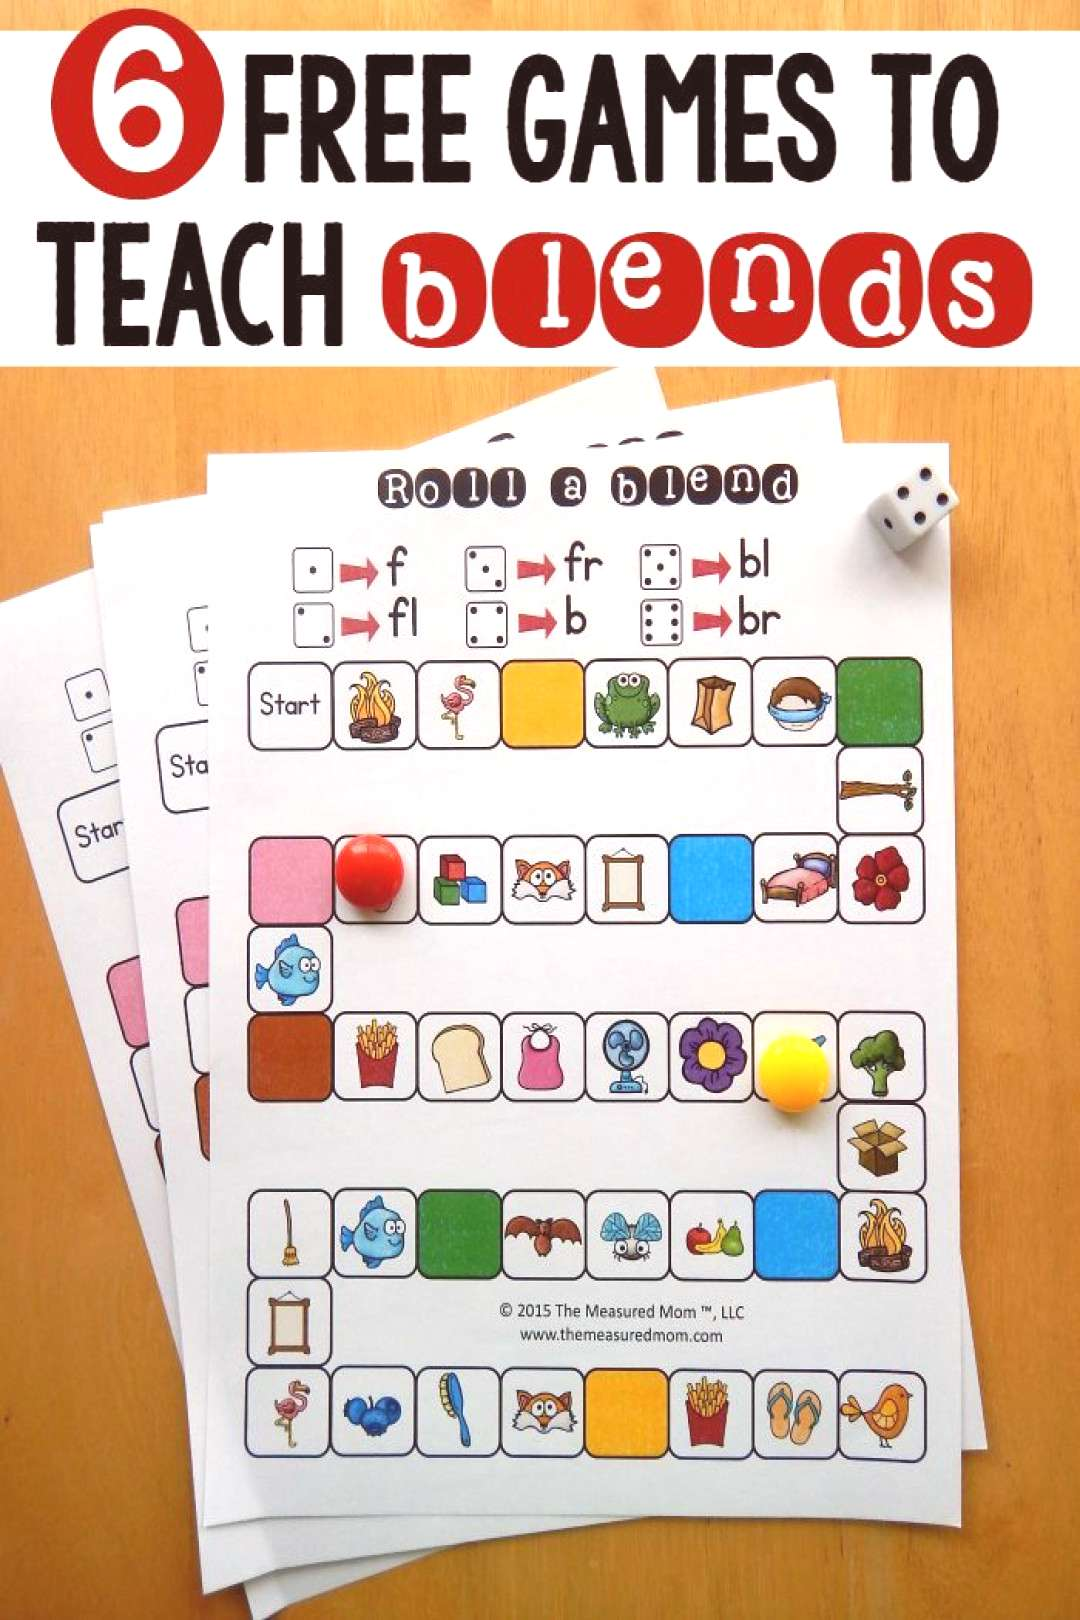 6 free games for teaching beginning blends - The Measured Mom If you need free activities for teach